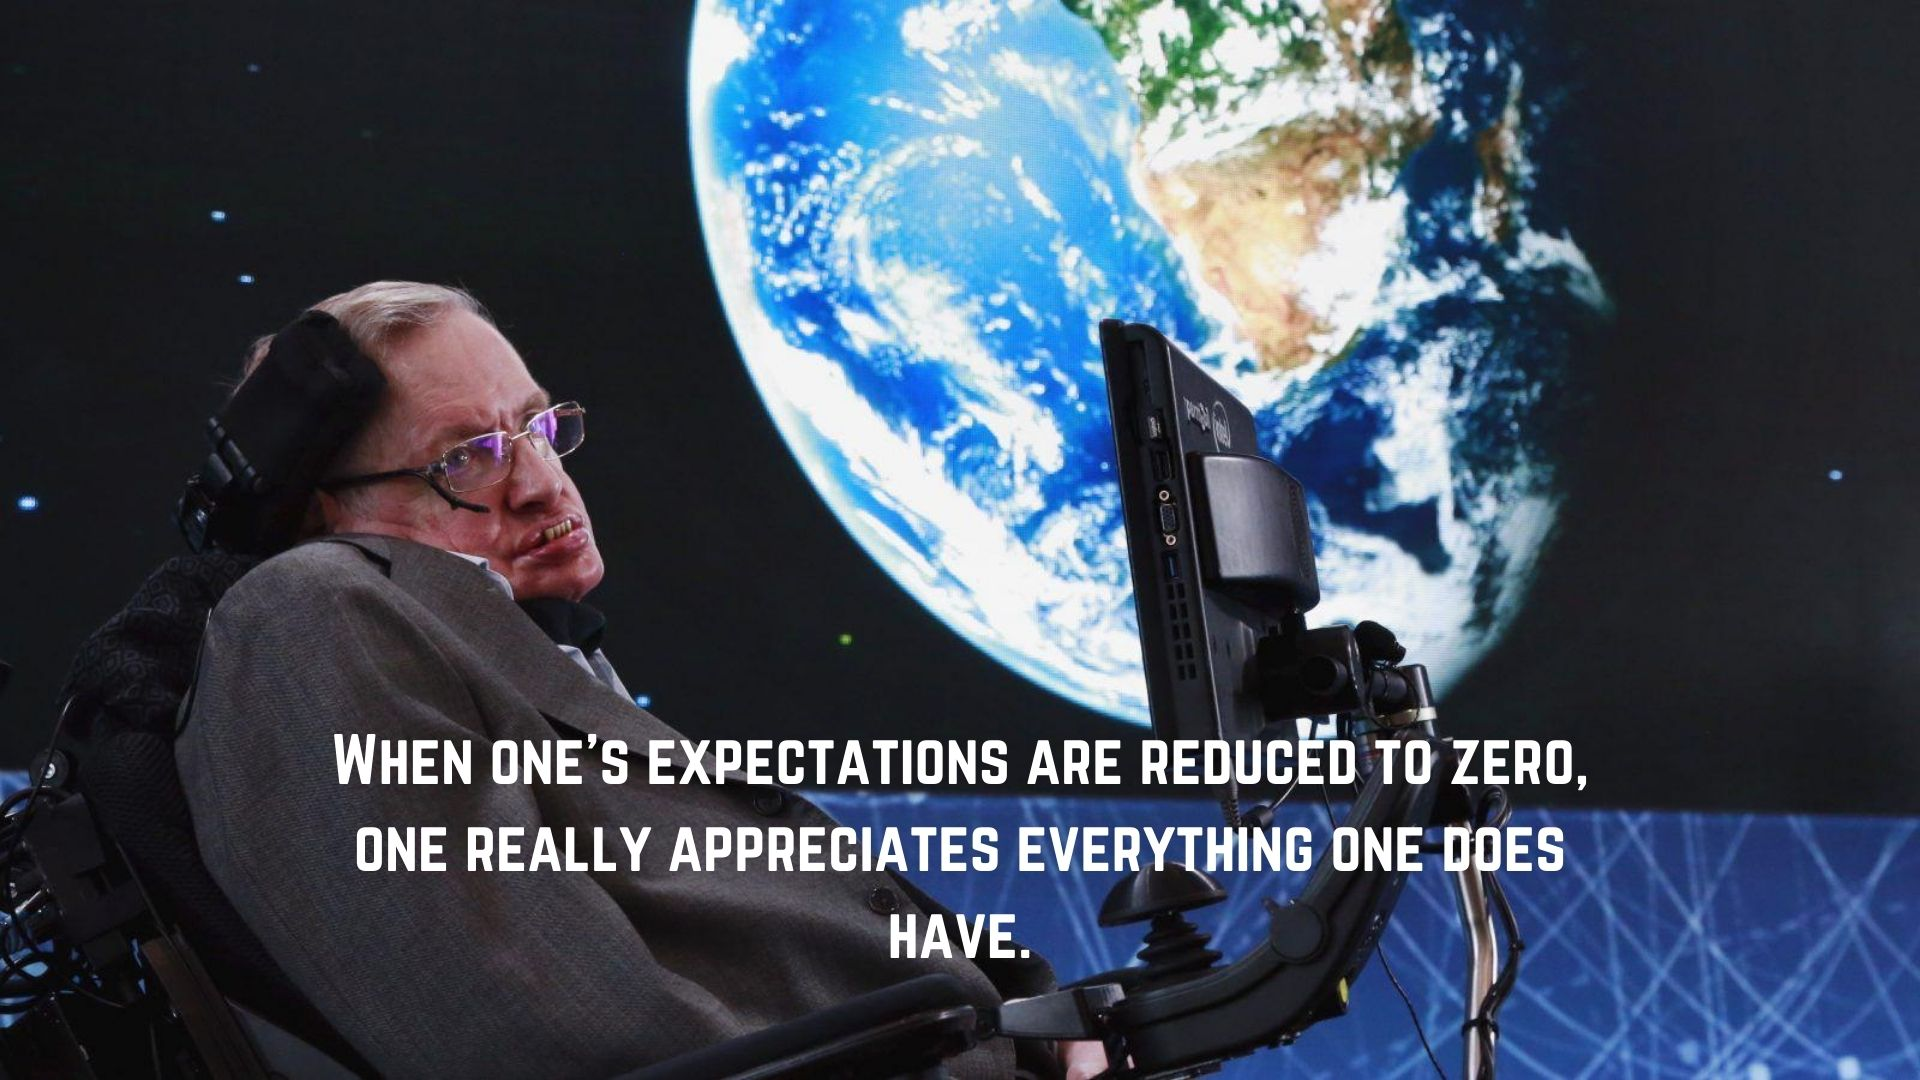 When one's expectations are reduced to zero, one really appreciates everything one does have